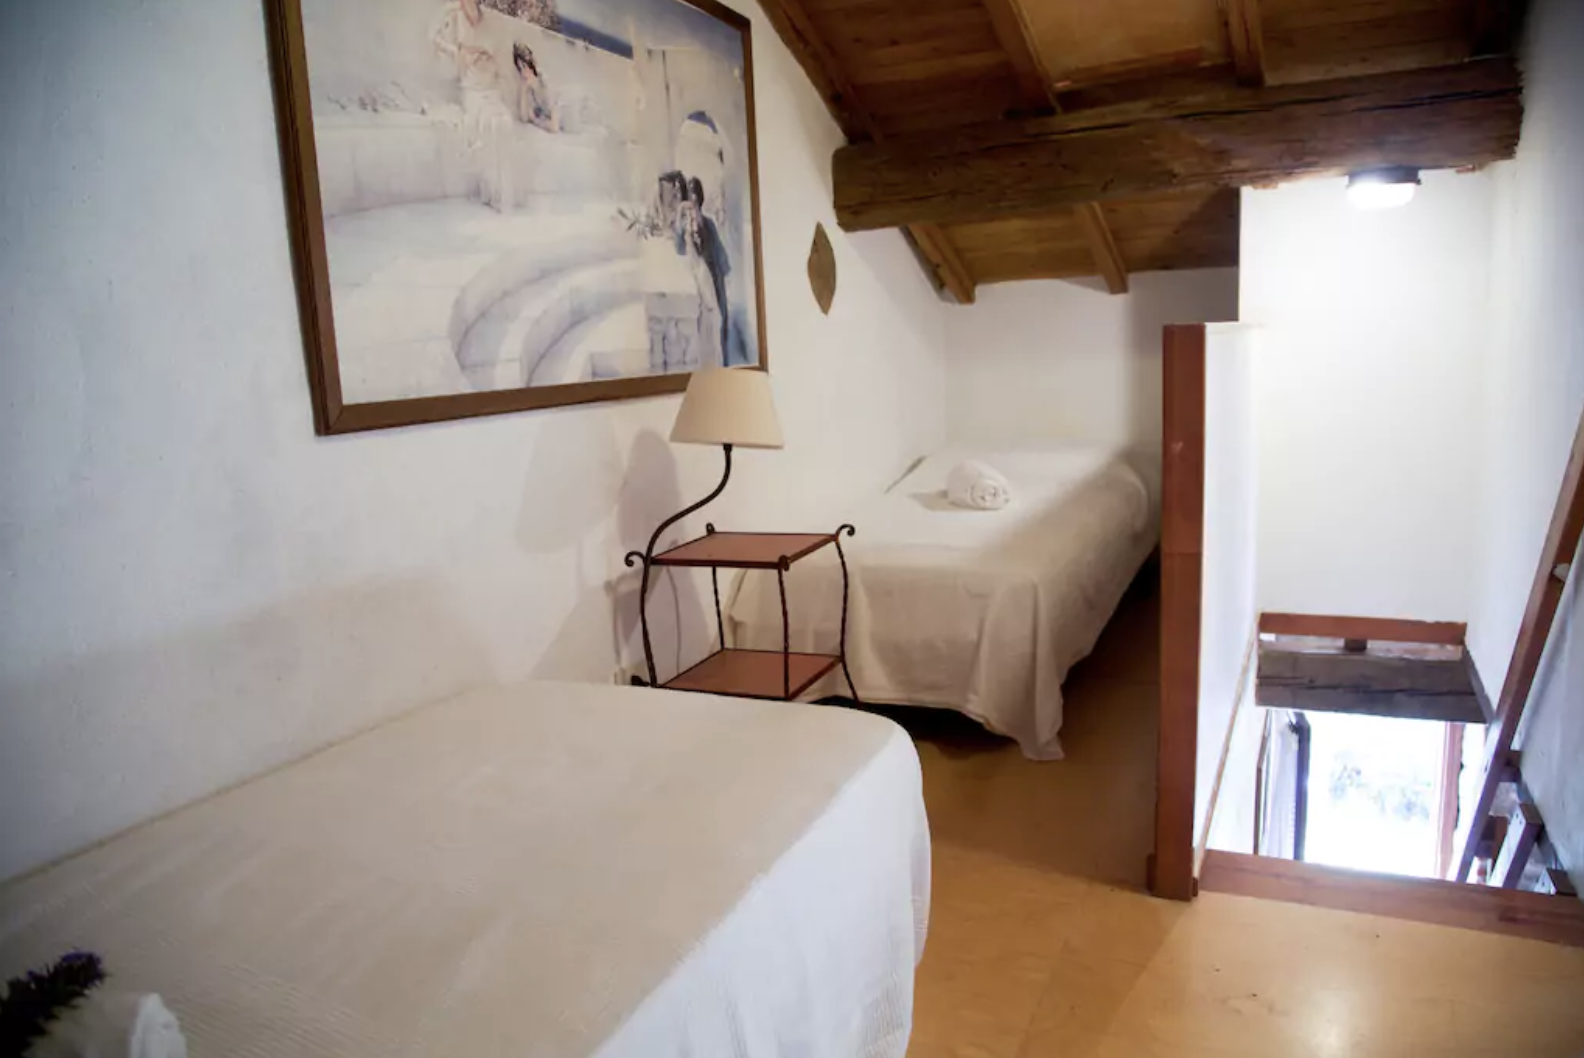 Fattoria 5 (2 bedroom apartment with sleeping loft for up to 7 guests)